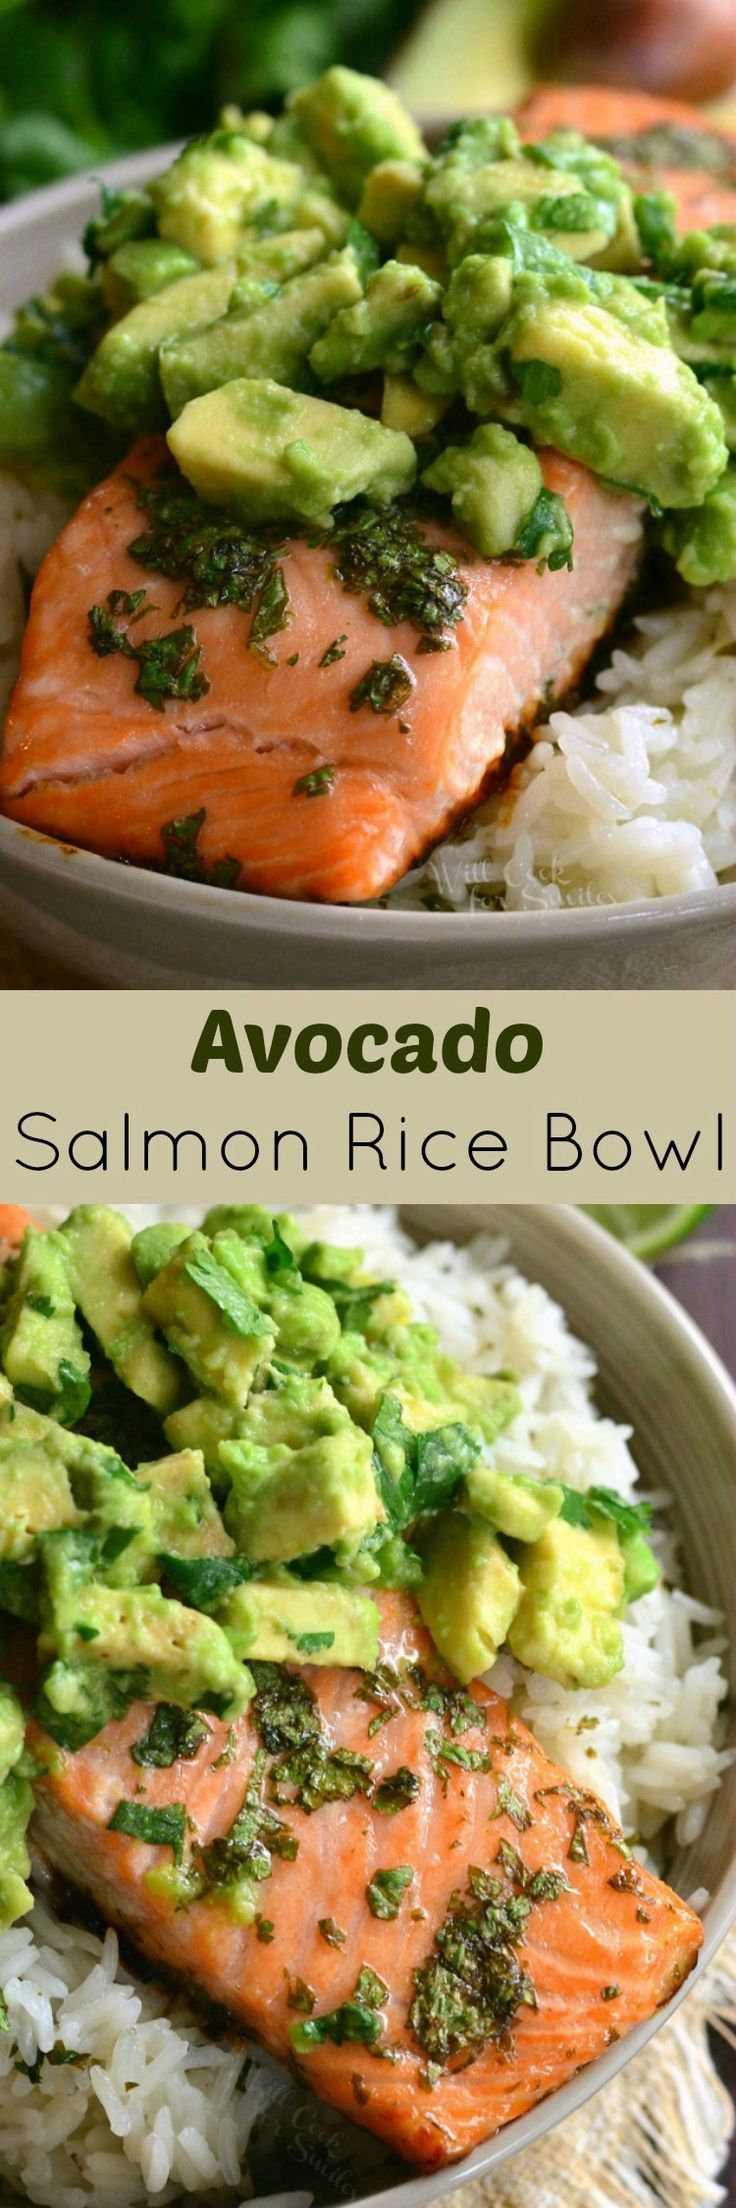 Avocado Salmon Cauliflower Rice Bowl. Beautiful honey, lime, and cilantro flavors come together is this tasty salmon rice bowl.